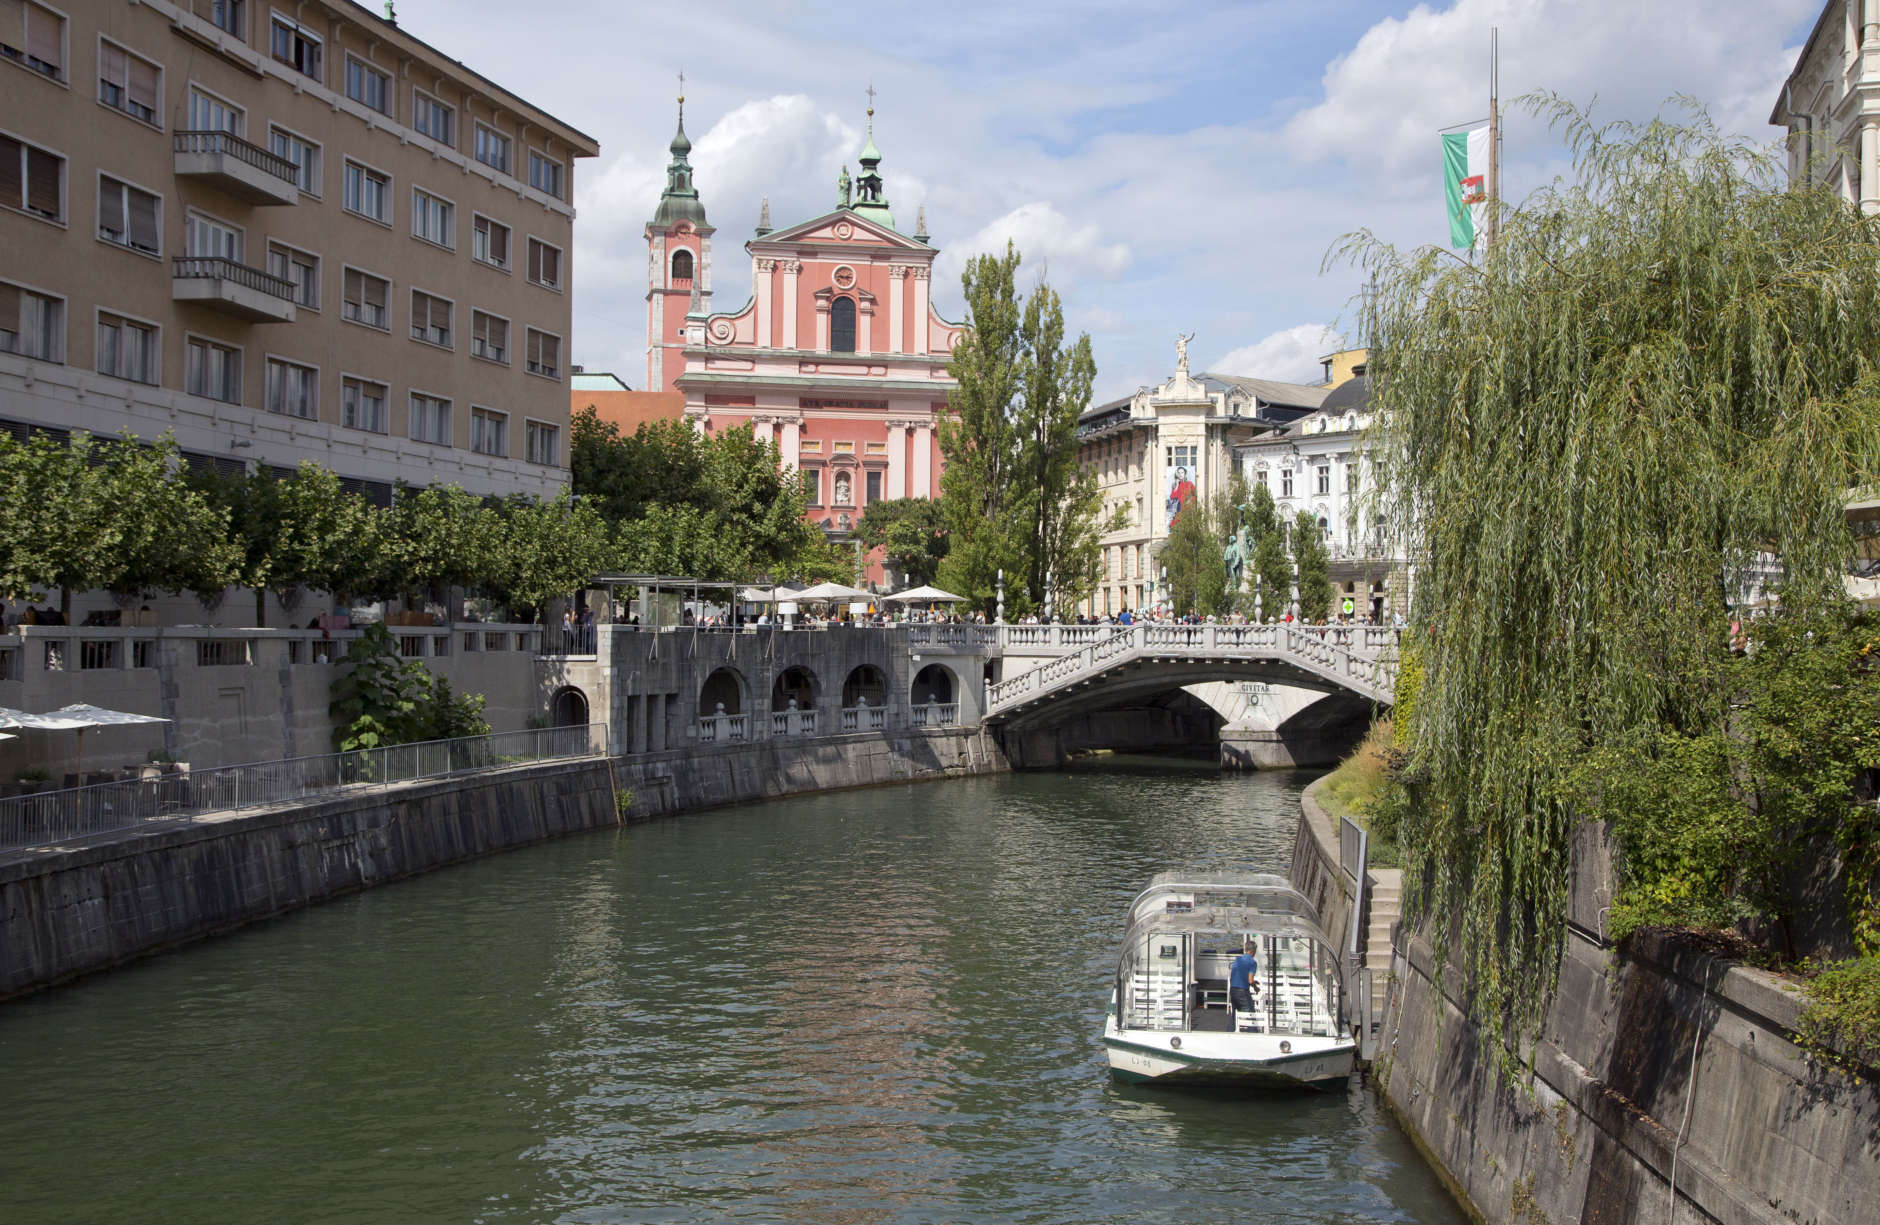 FILE - In this Aug. 12, 2016 file photo, tourists and residents walk across Tromostovje bridge in downtown Ljubljana, Slovenia. The tiny European nation of Slovenia is getting an outsize share of attention lately. Not only has Melania Trump, wife of U.S. President-elect Donald Trump. given her native country a boost of recognition, but Slovenia's also in the midst of a tourism boom. (AP Photo/Darko Bandic, File)